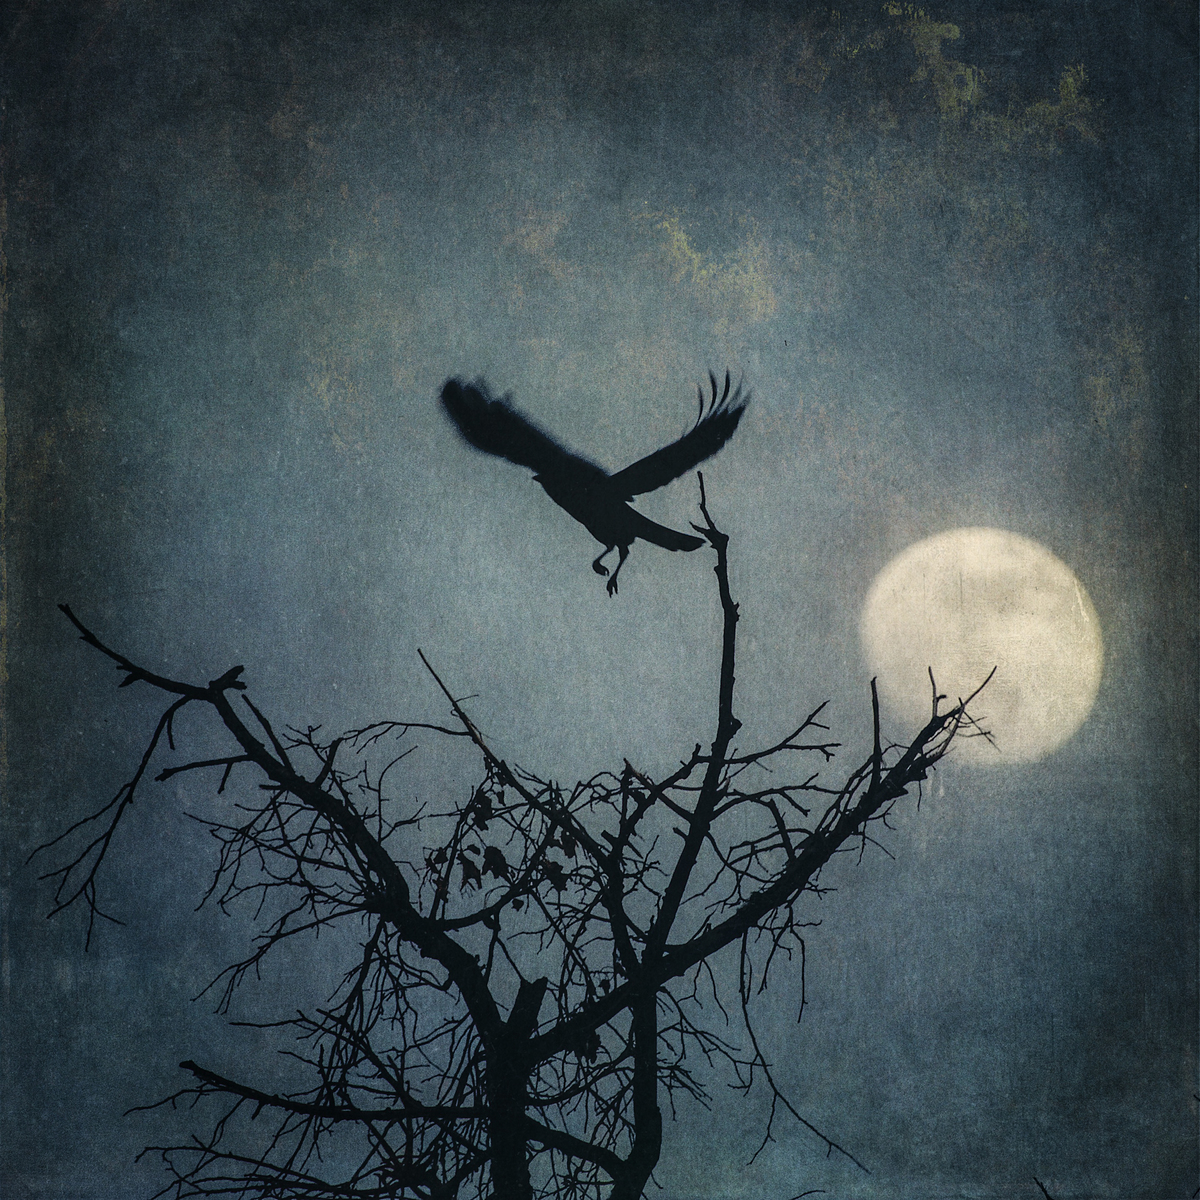 The Cry of the Lonely Crow